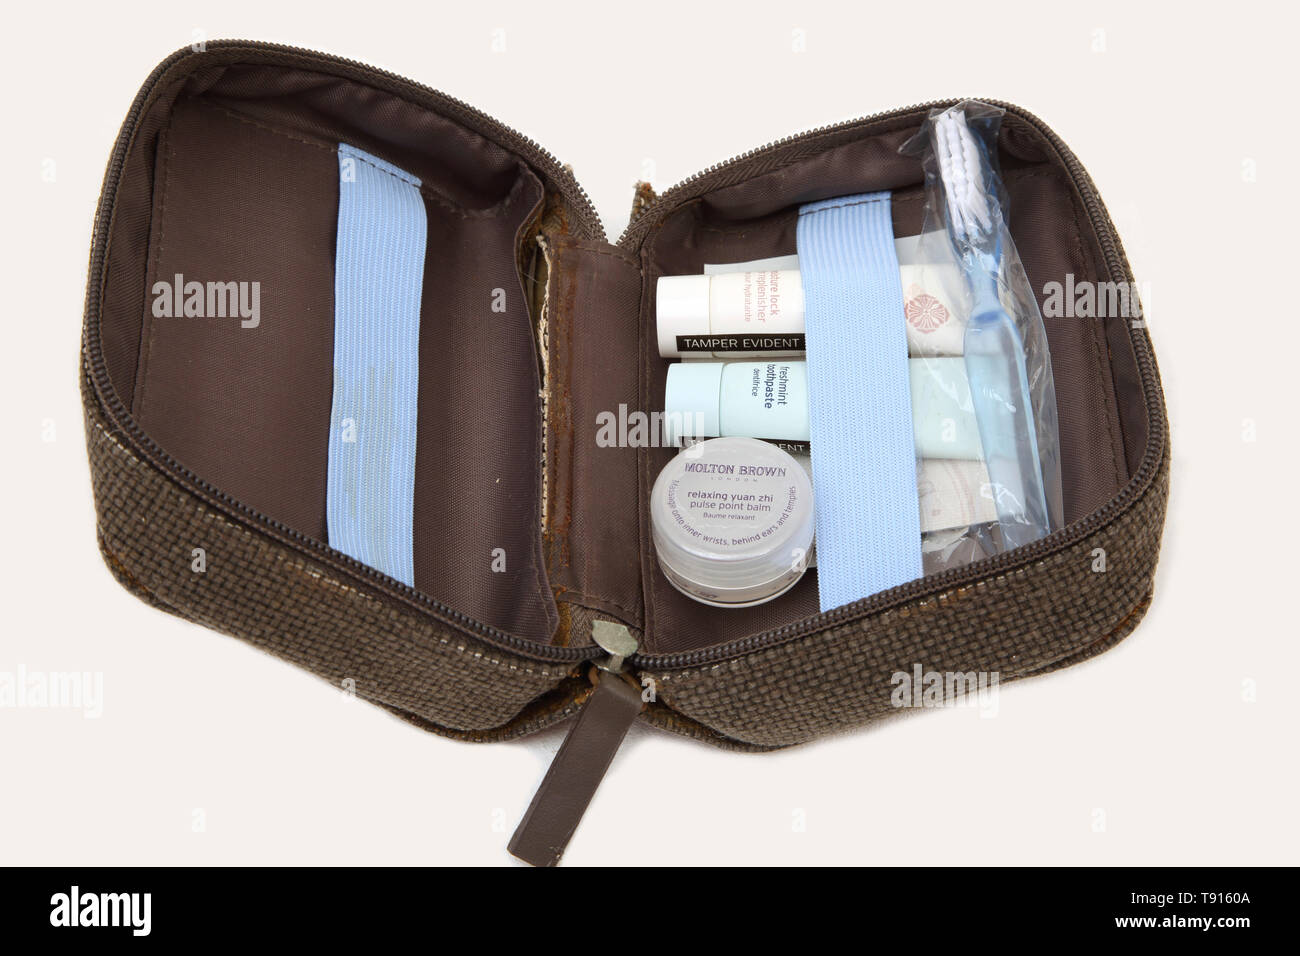 Molton Brown Travel Toiletry set - Moisturiser, Toothpaste, Toothbrush and Yuan Zhi Pulse Point Balm - Stock Image